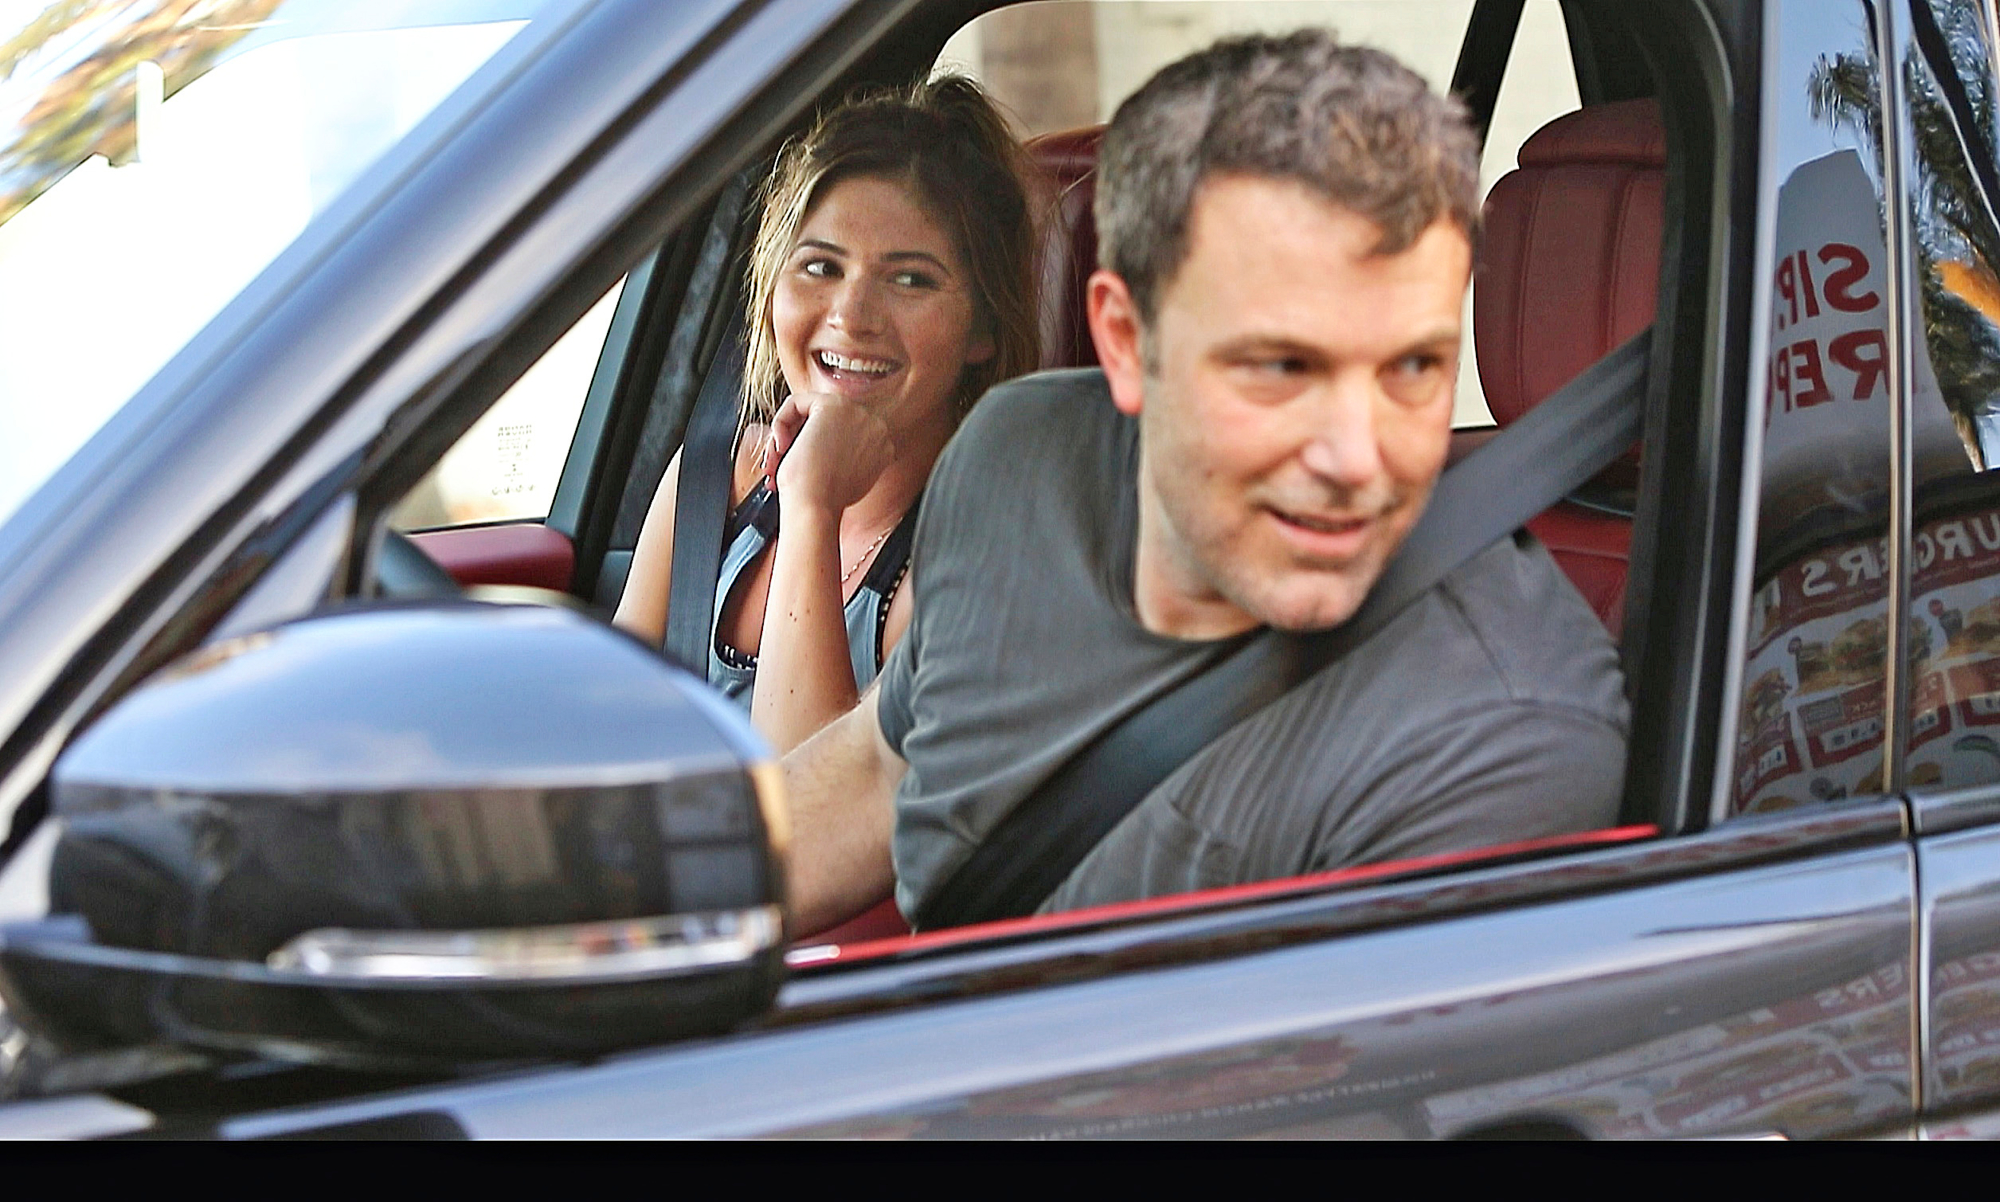 Ben Affleck is seen for the second time in 3 days with Playboy playmate Shauna Sexton as the pair are seen going thru Jack In The Box drive thru in Los Angeles.